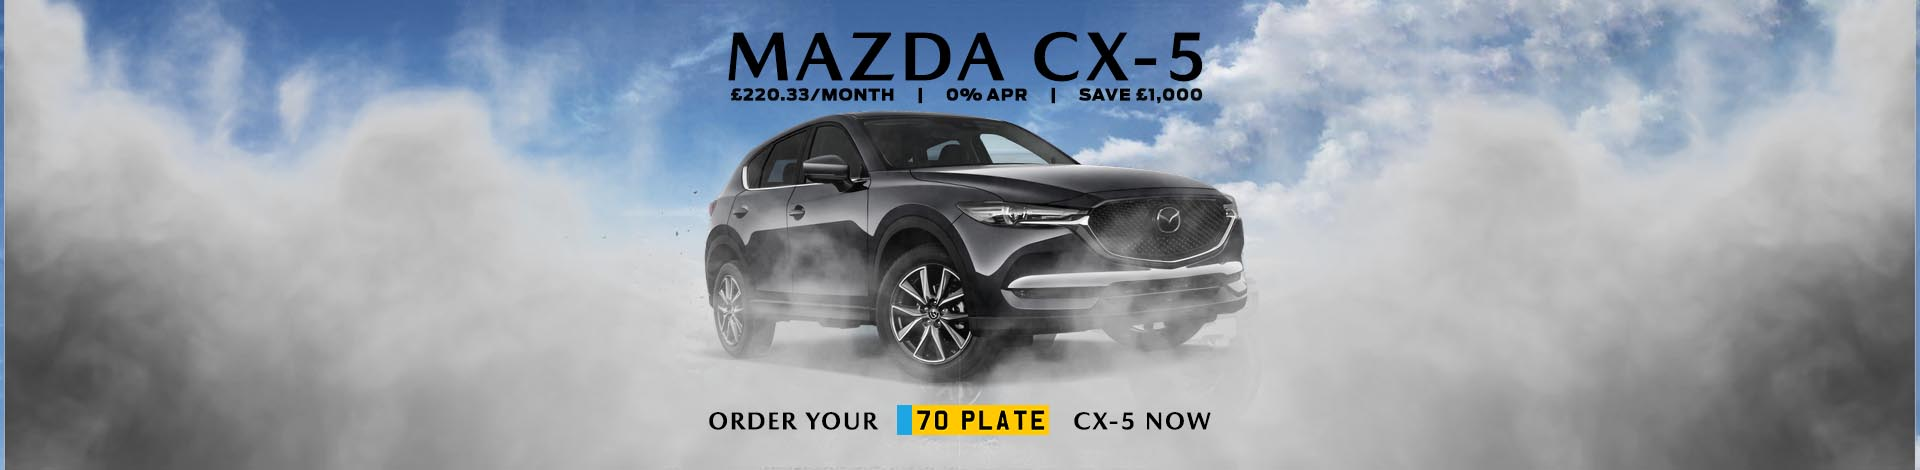 Mazda CX-5 Page Offer Banner